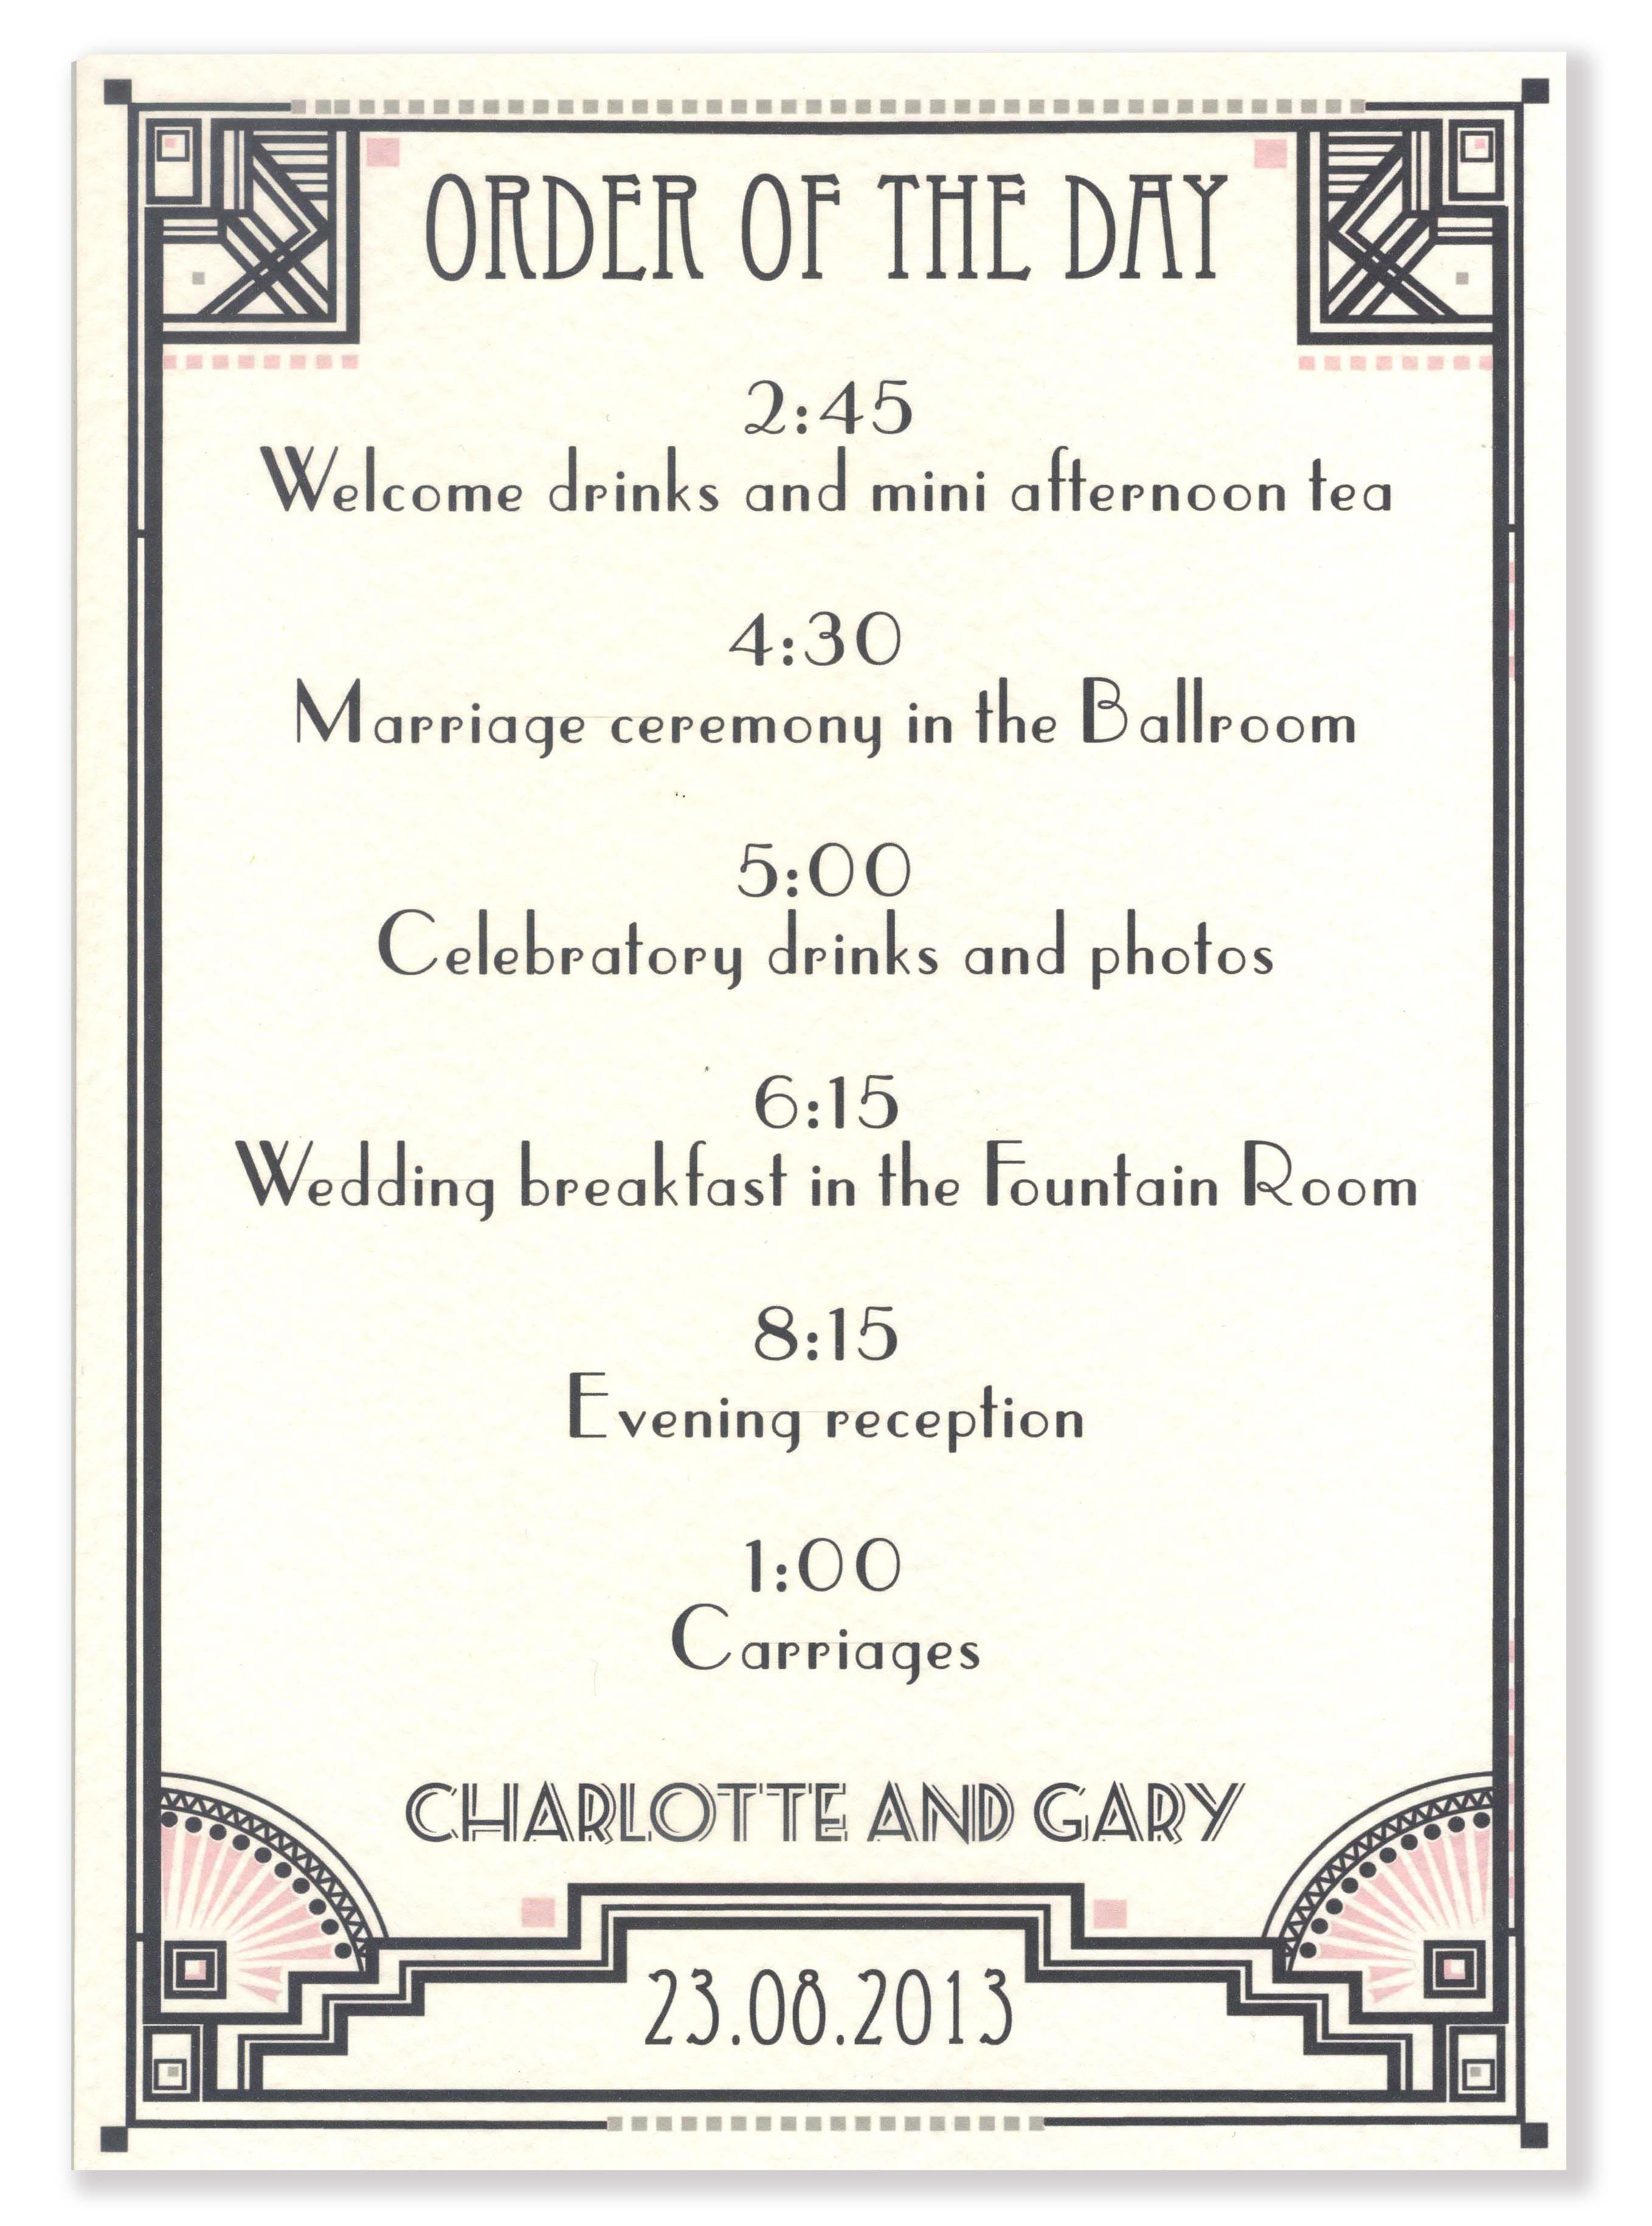 Gatsby Wedding Order of the day